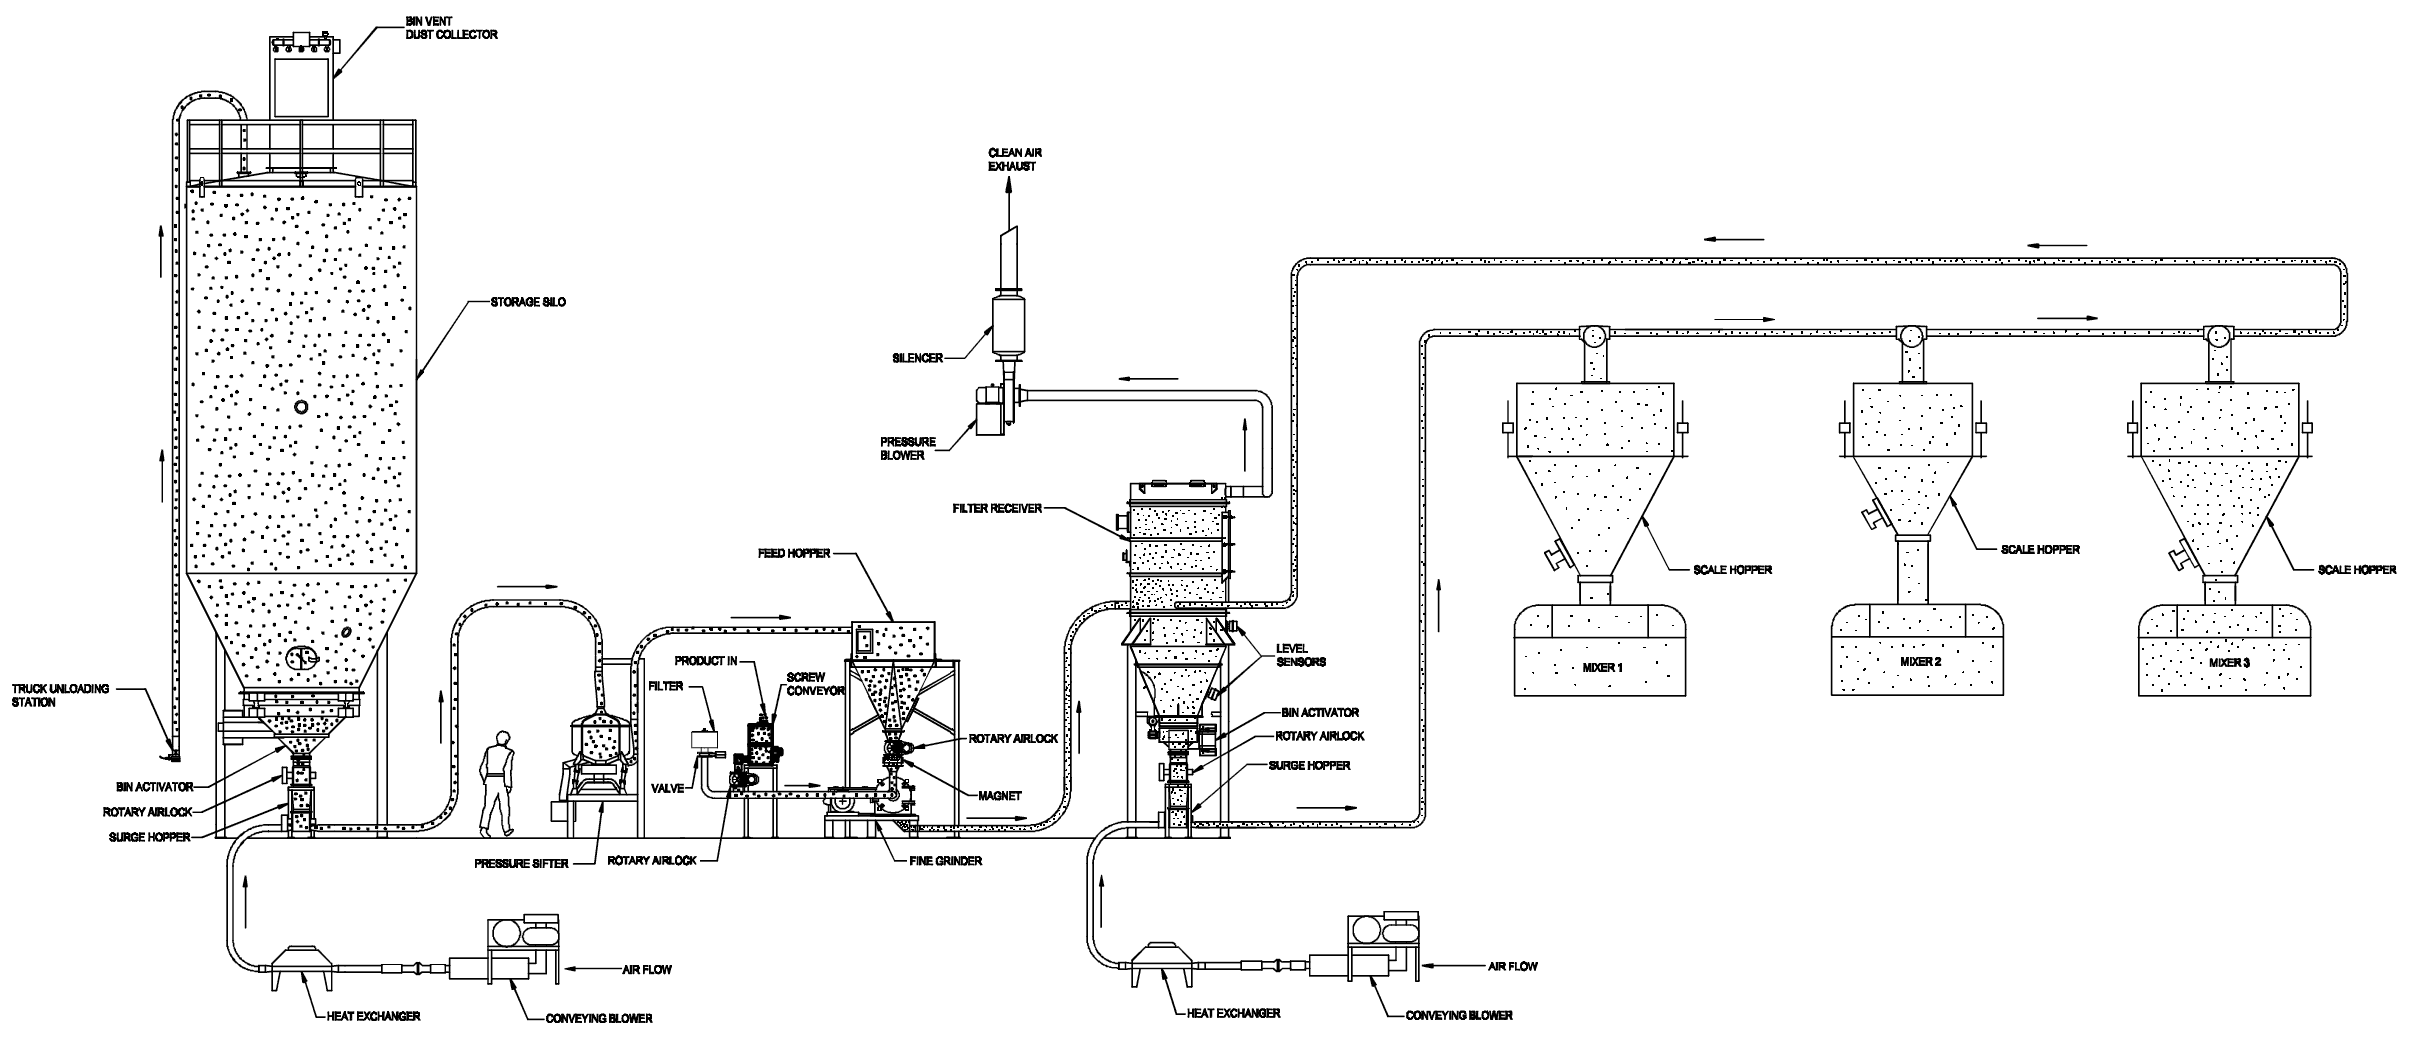 Sugar Grinding And Conveying System Upgrade